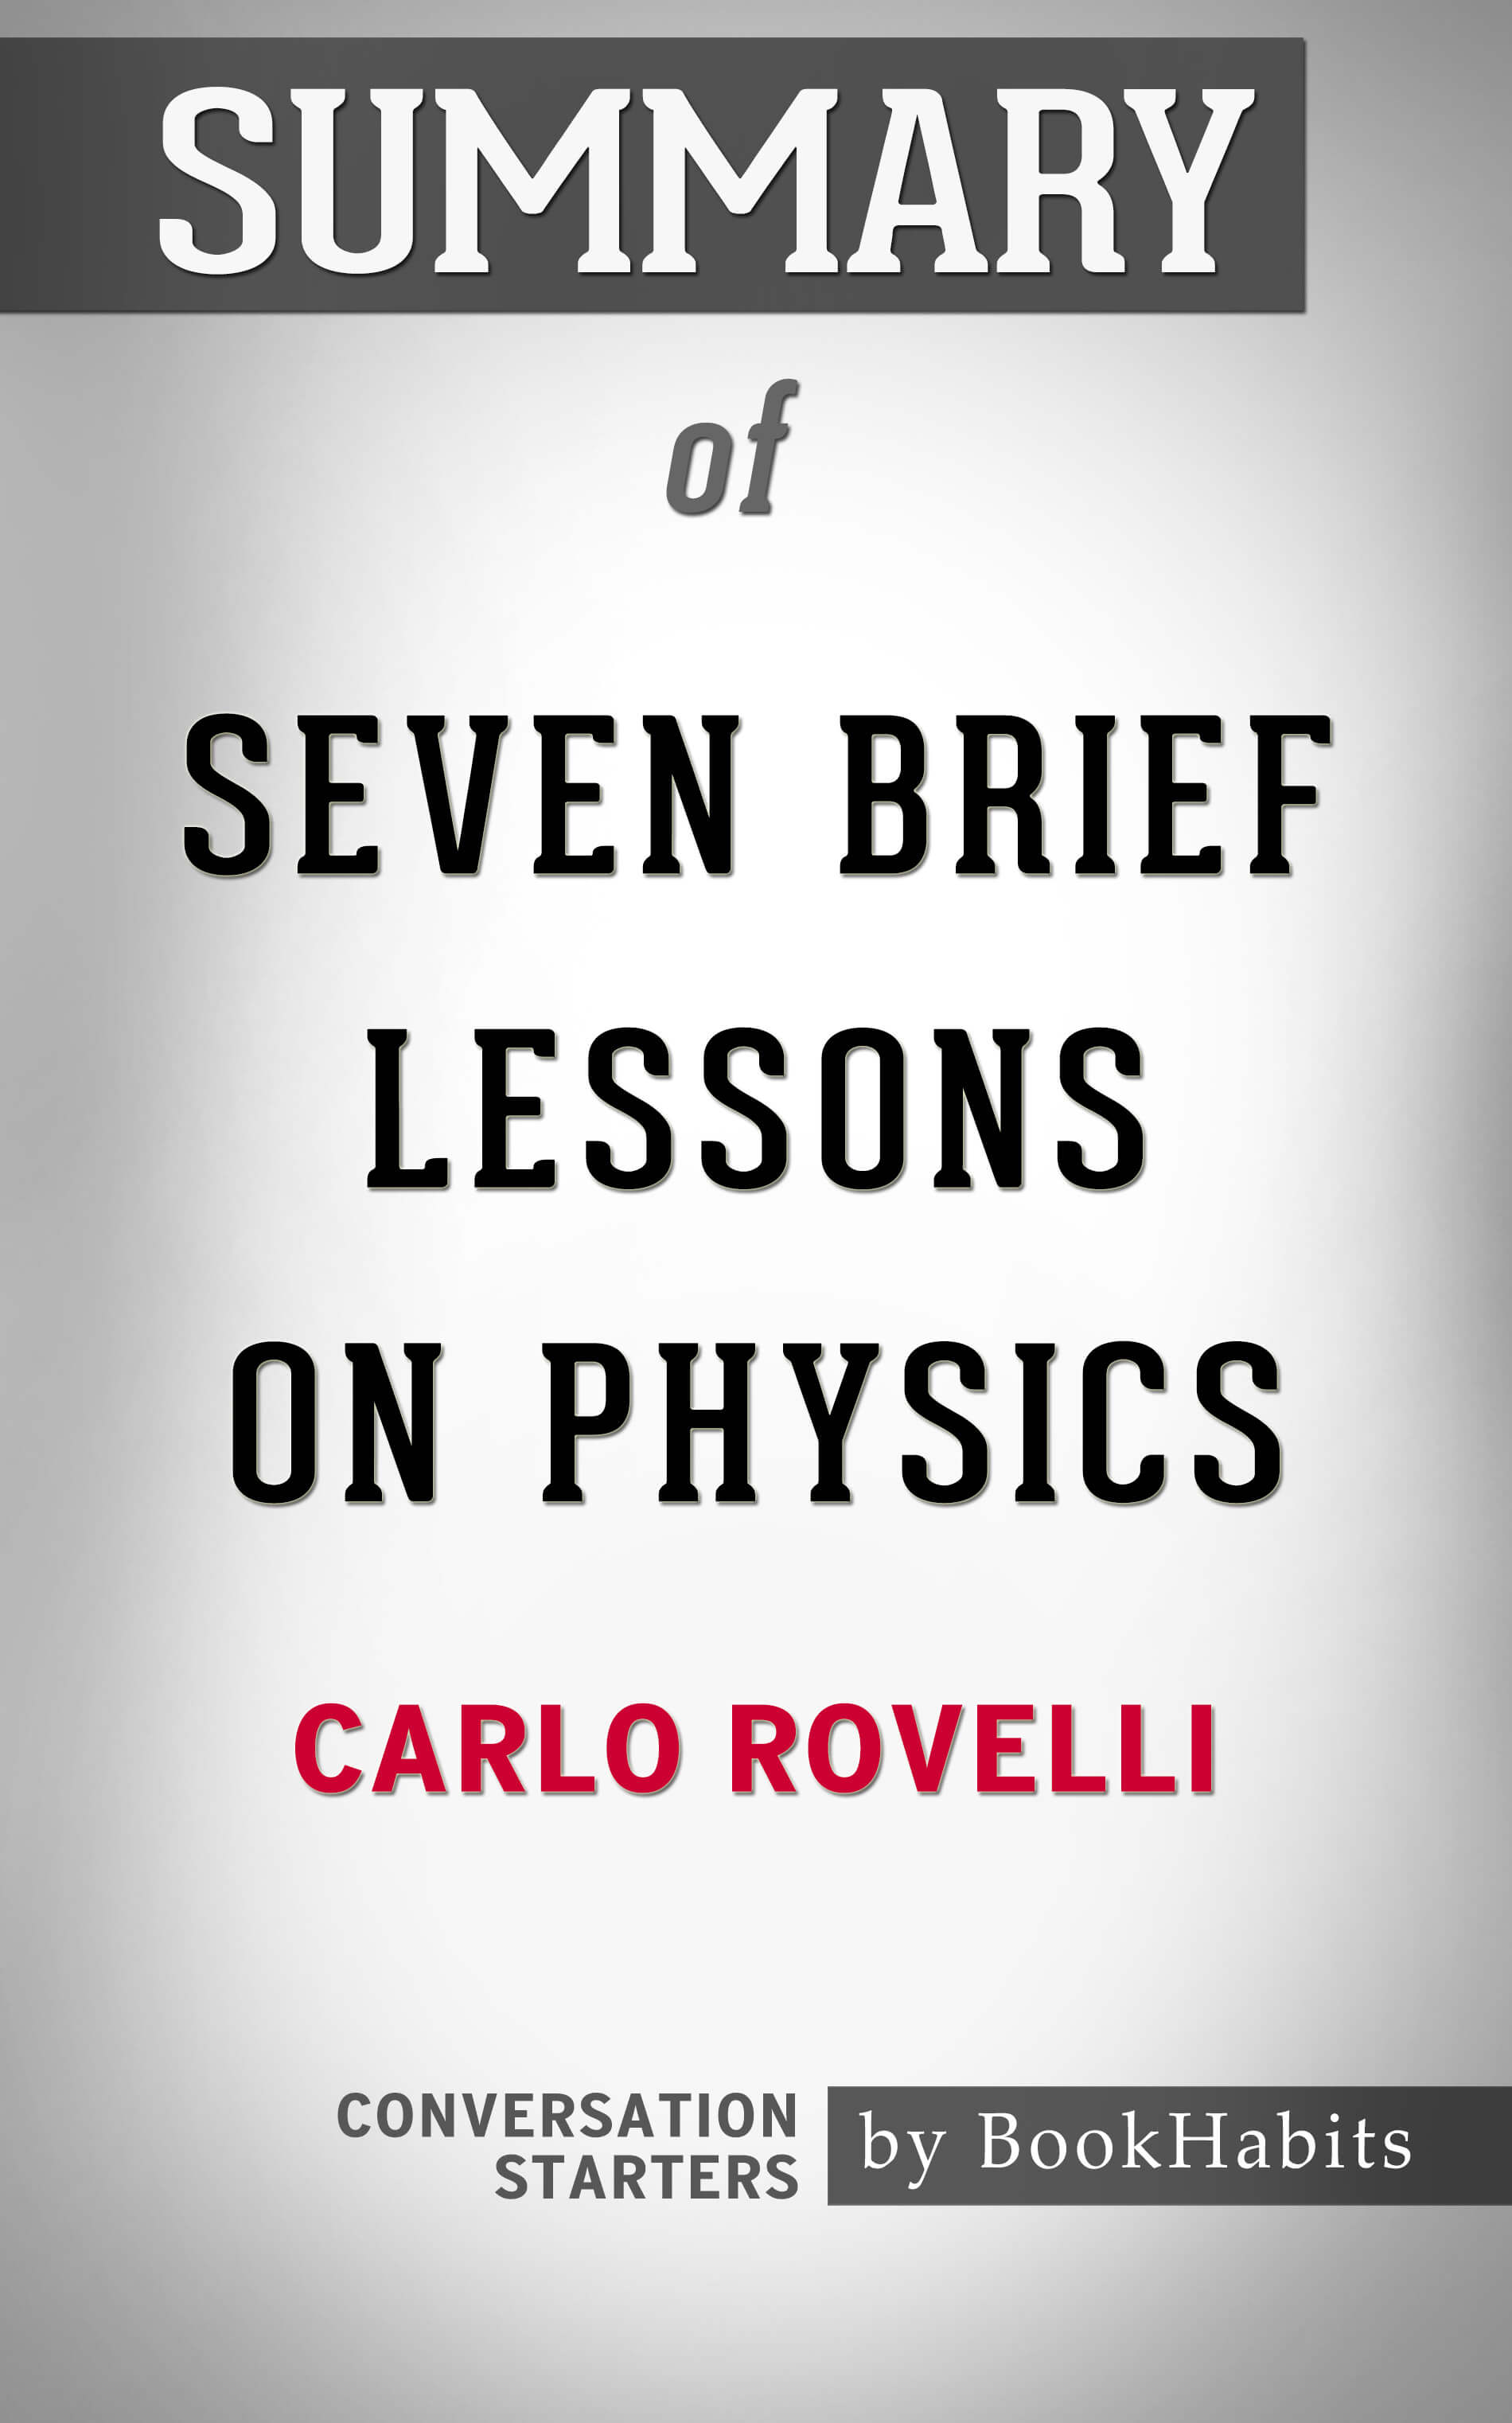 Summary of Seven Brief Lessons on Physics ...